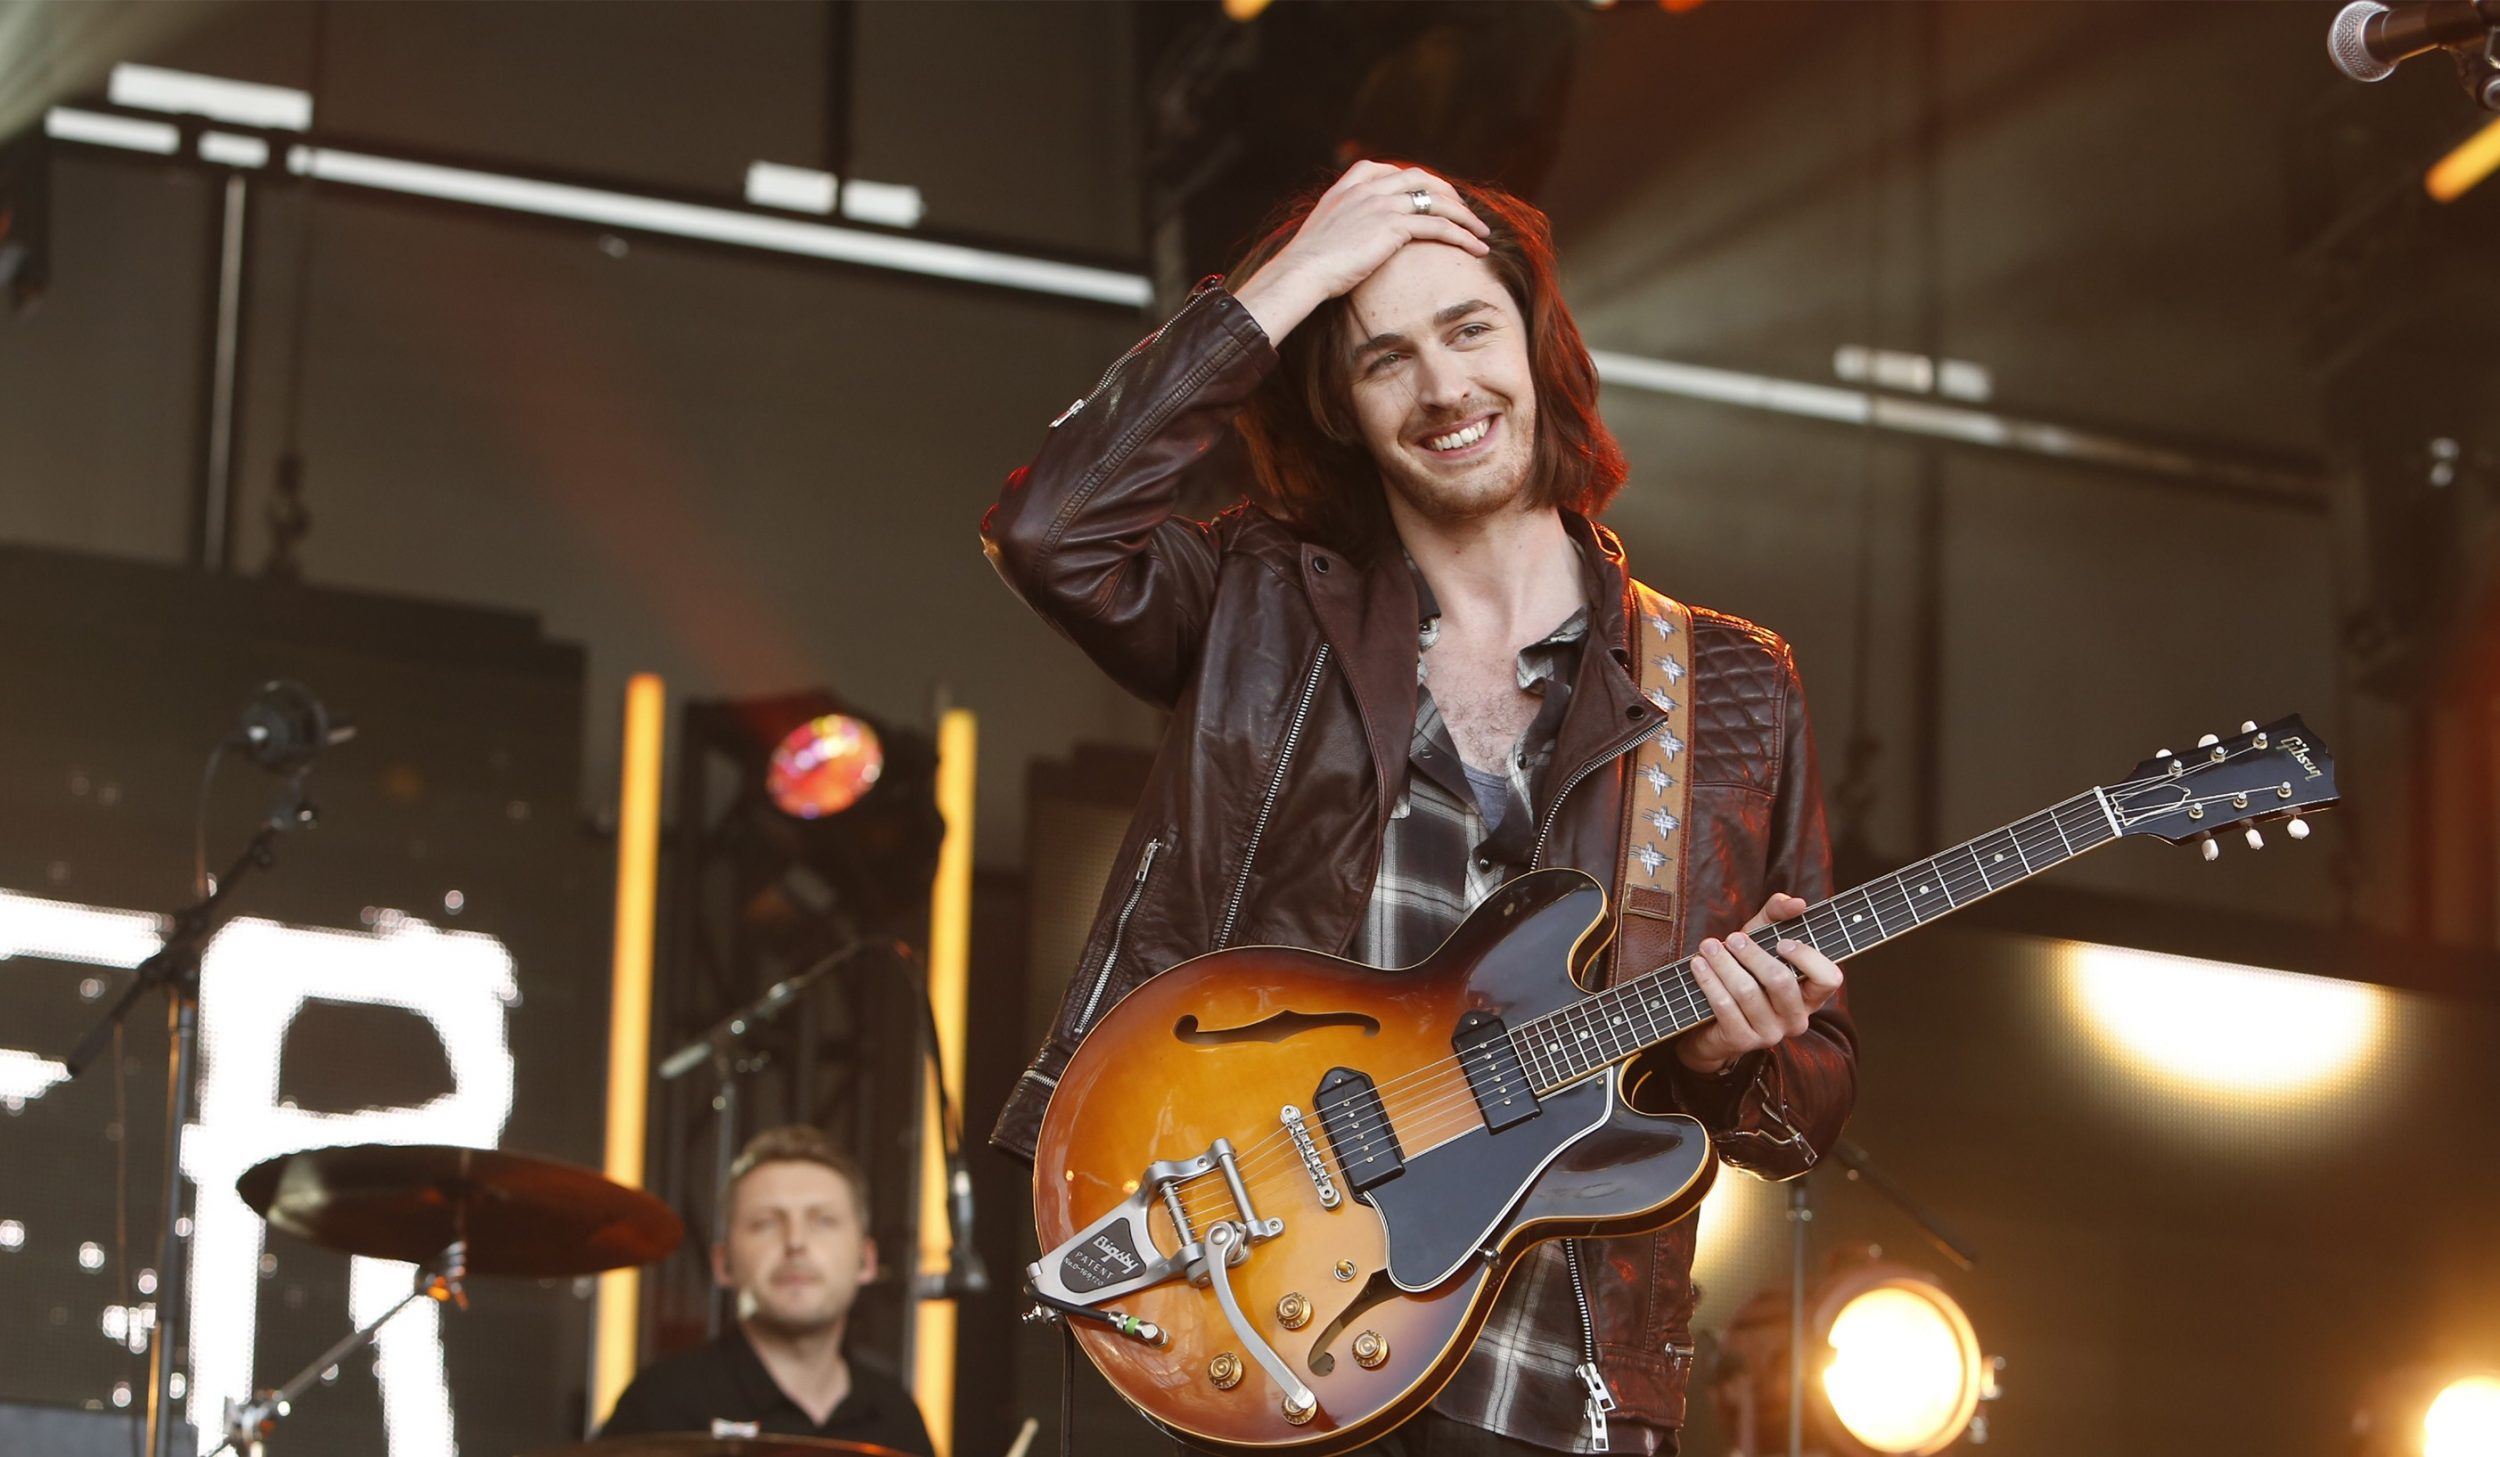 Hozier S Quot Someone New Quot Enters Top 10 At Hot Ac Radio Gwen